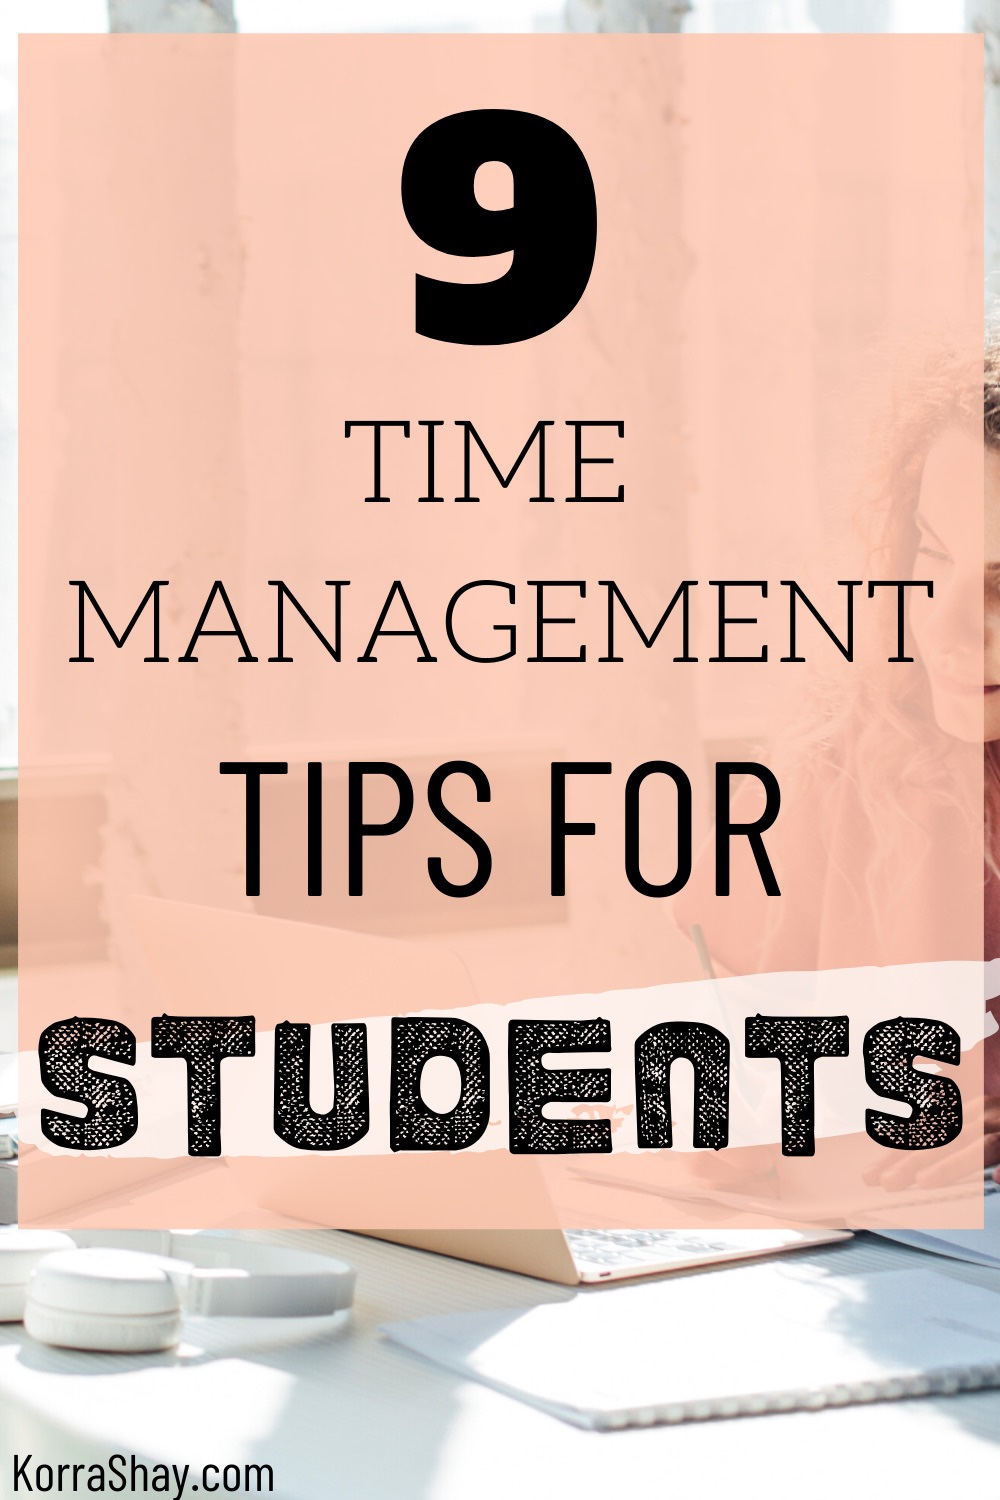 9 time management tips for students! How to manage your time better as a student.